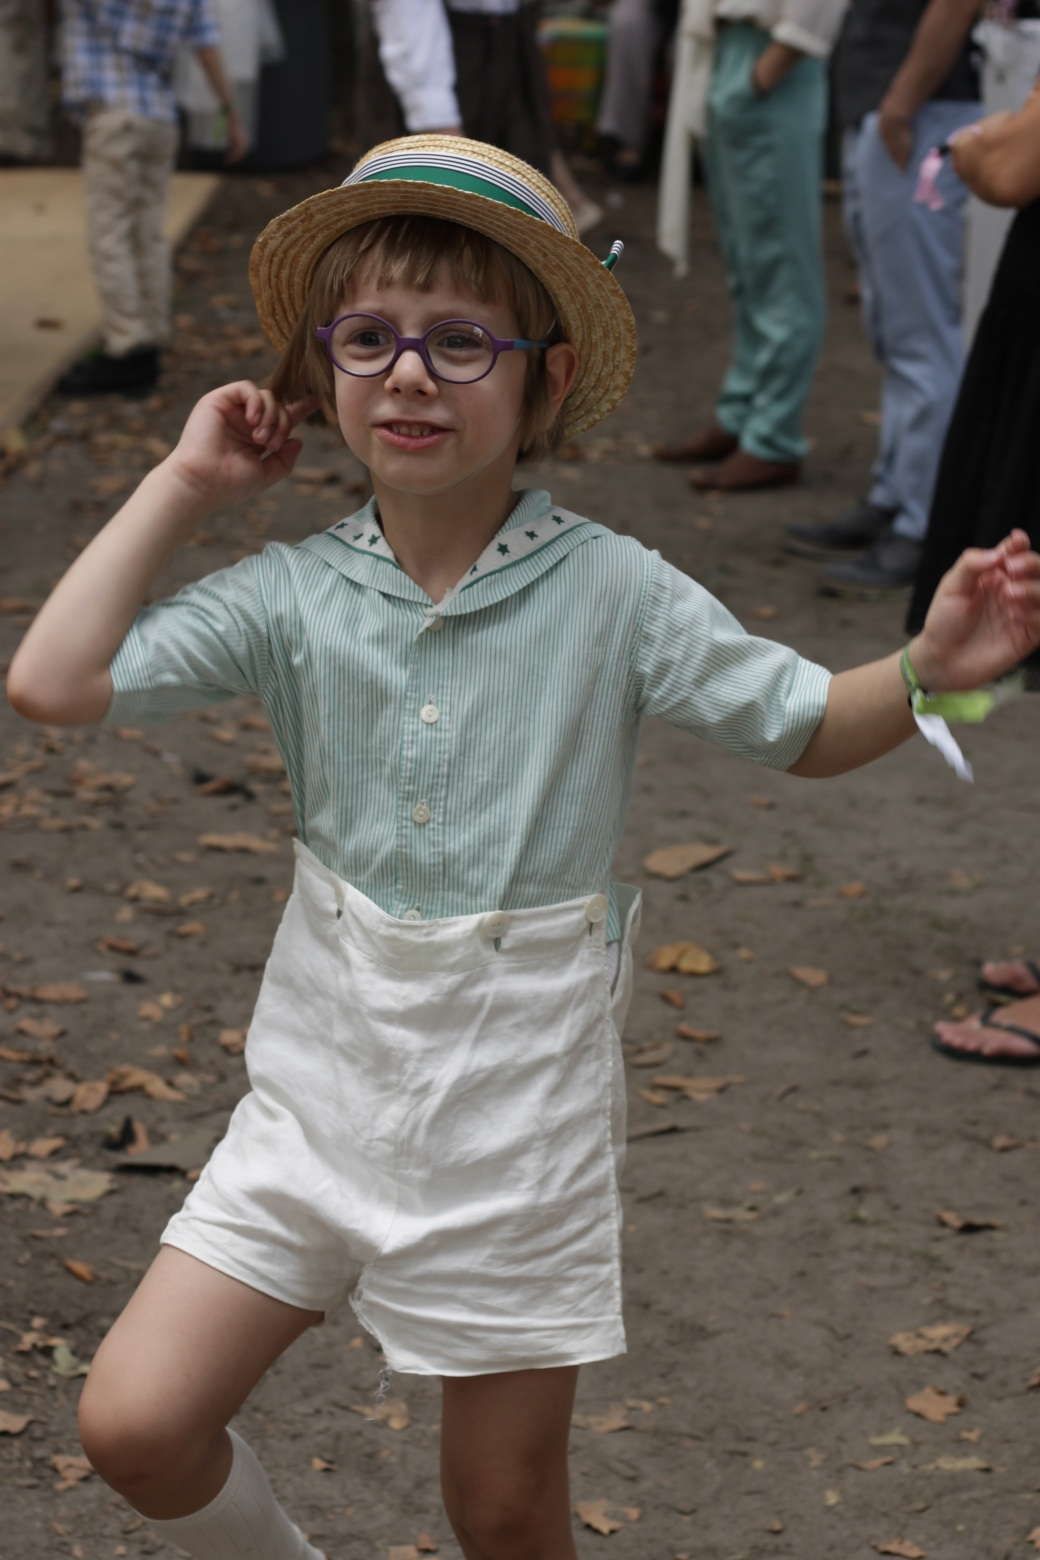 new york city governors island jazz age lawn party august 17 2014 17